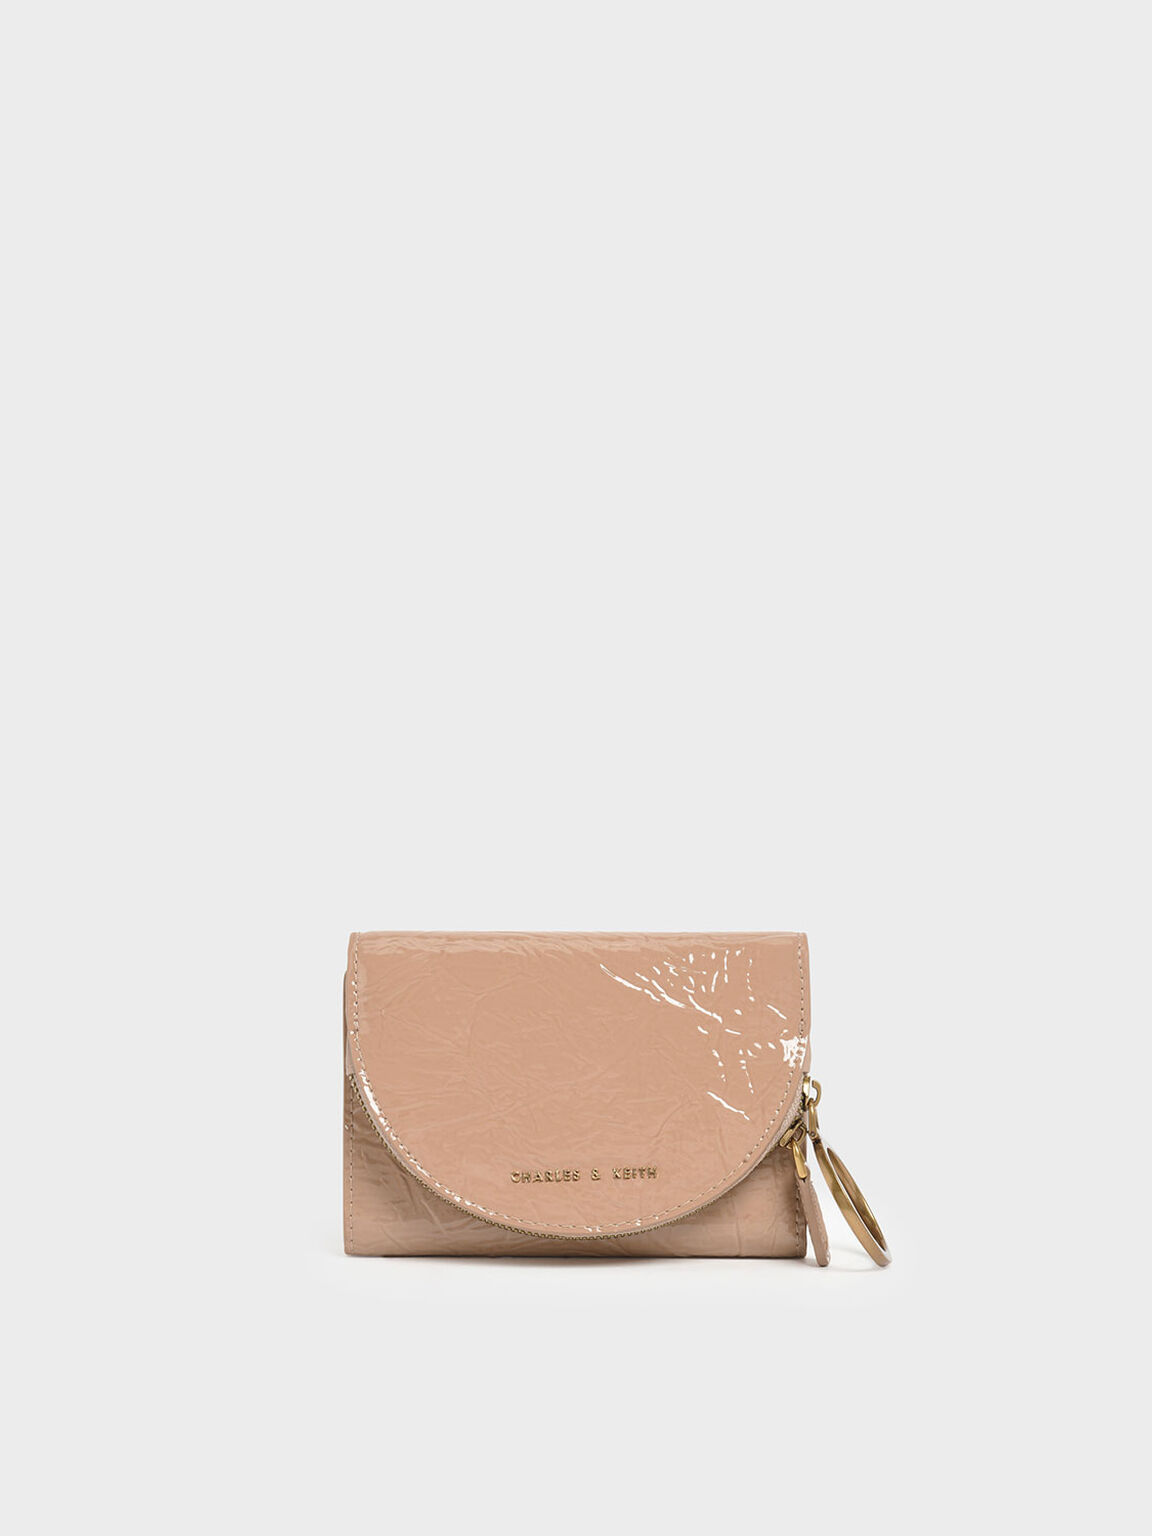 Wrinkled Patent Ring Zip Flap Mini Wallet, Beige, hi-res